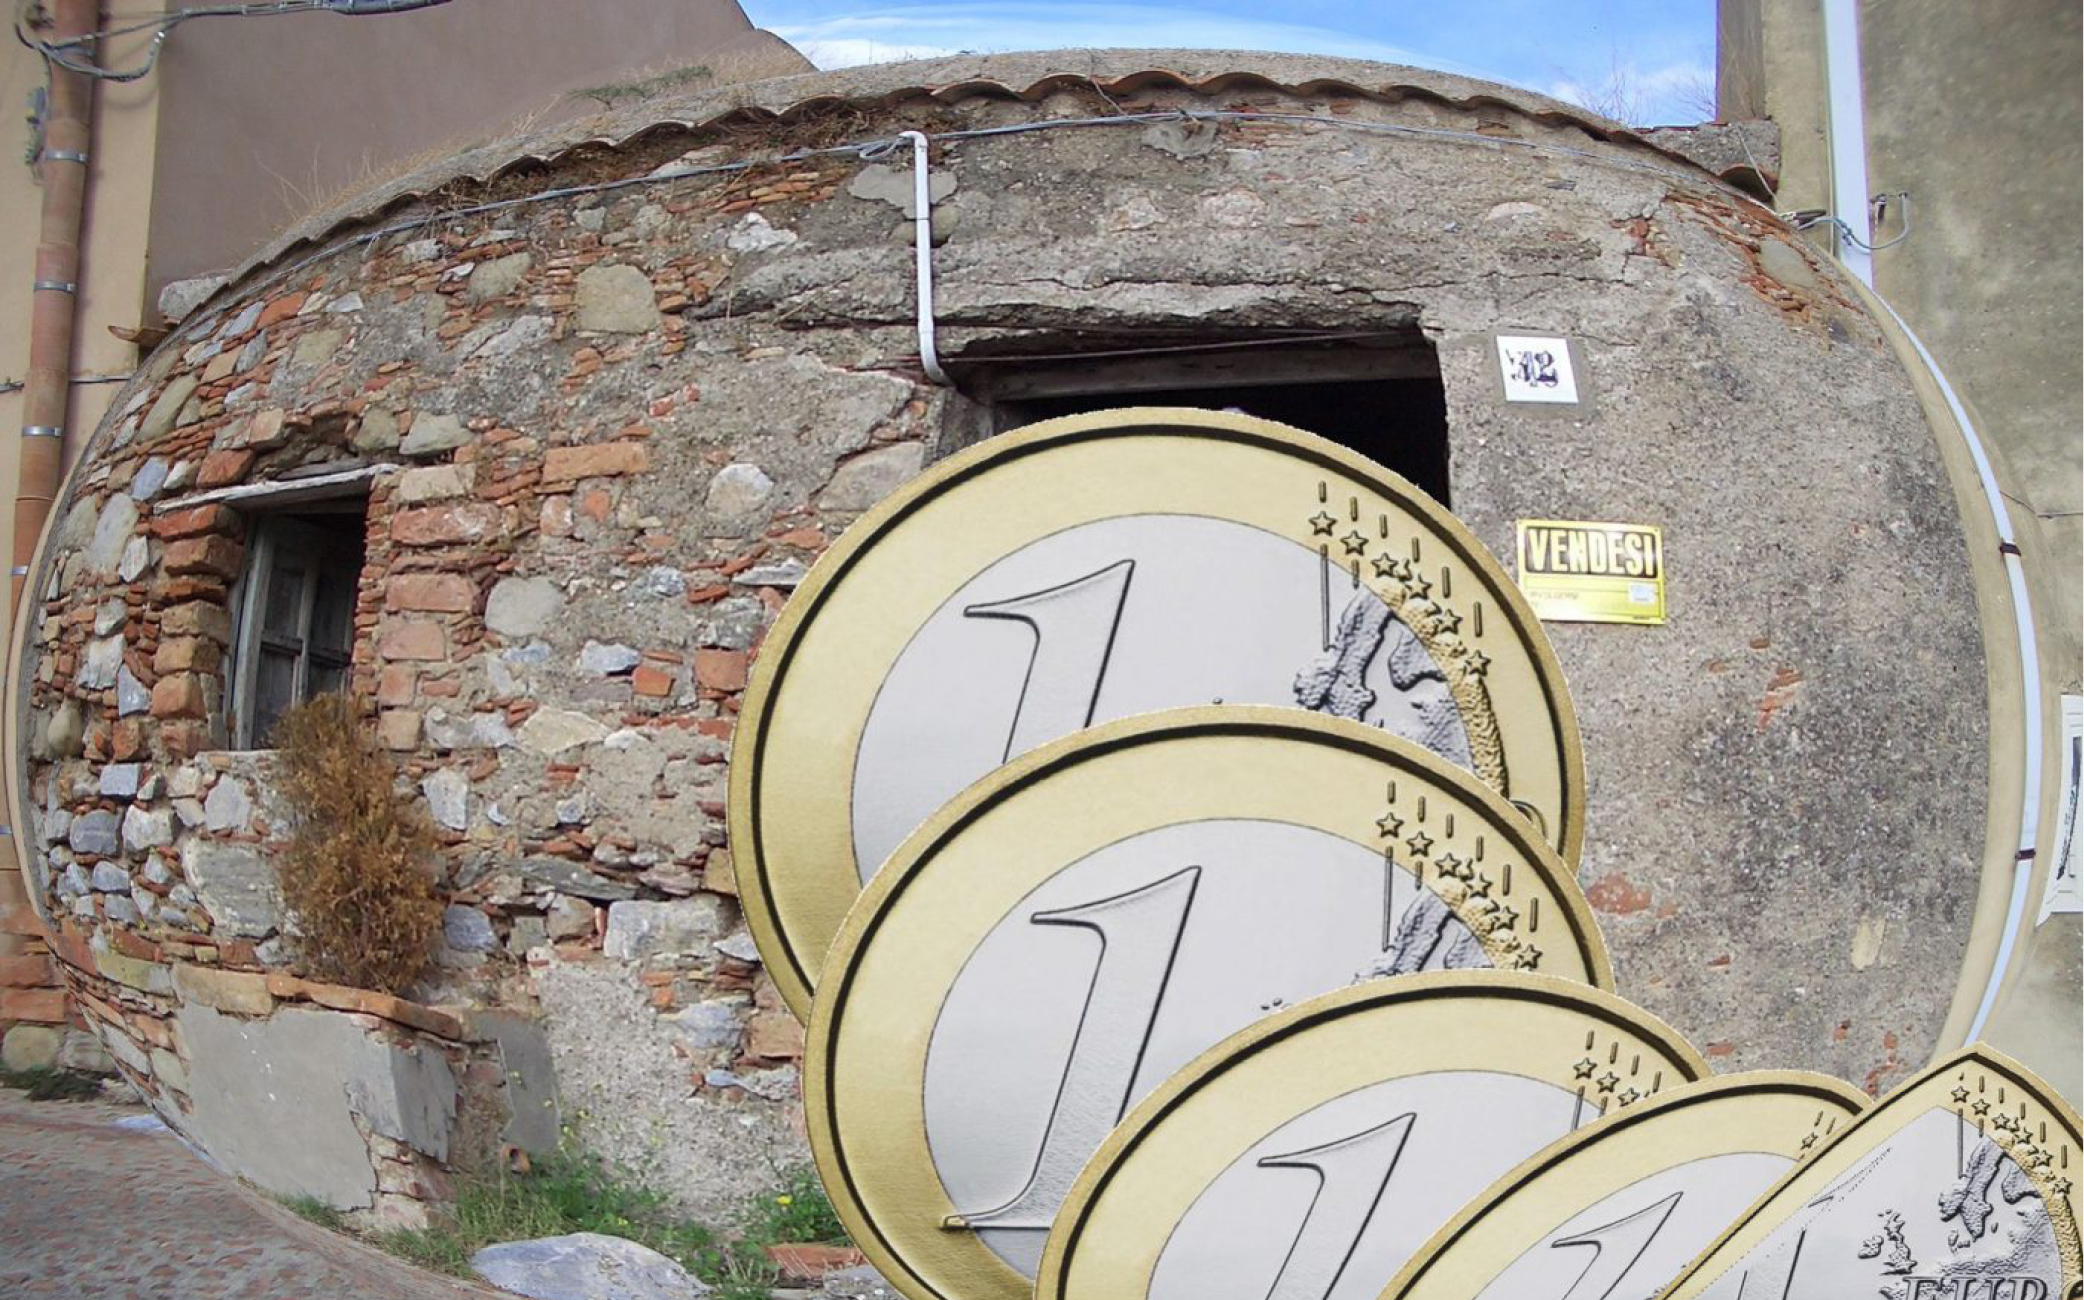 ¿Are in Italy selling houses for 1 euro?